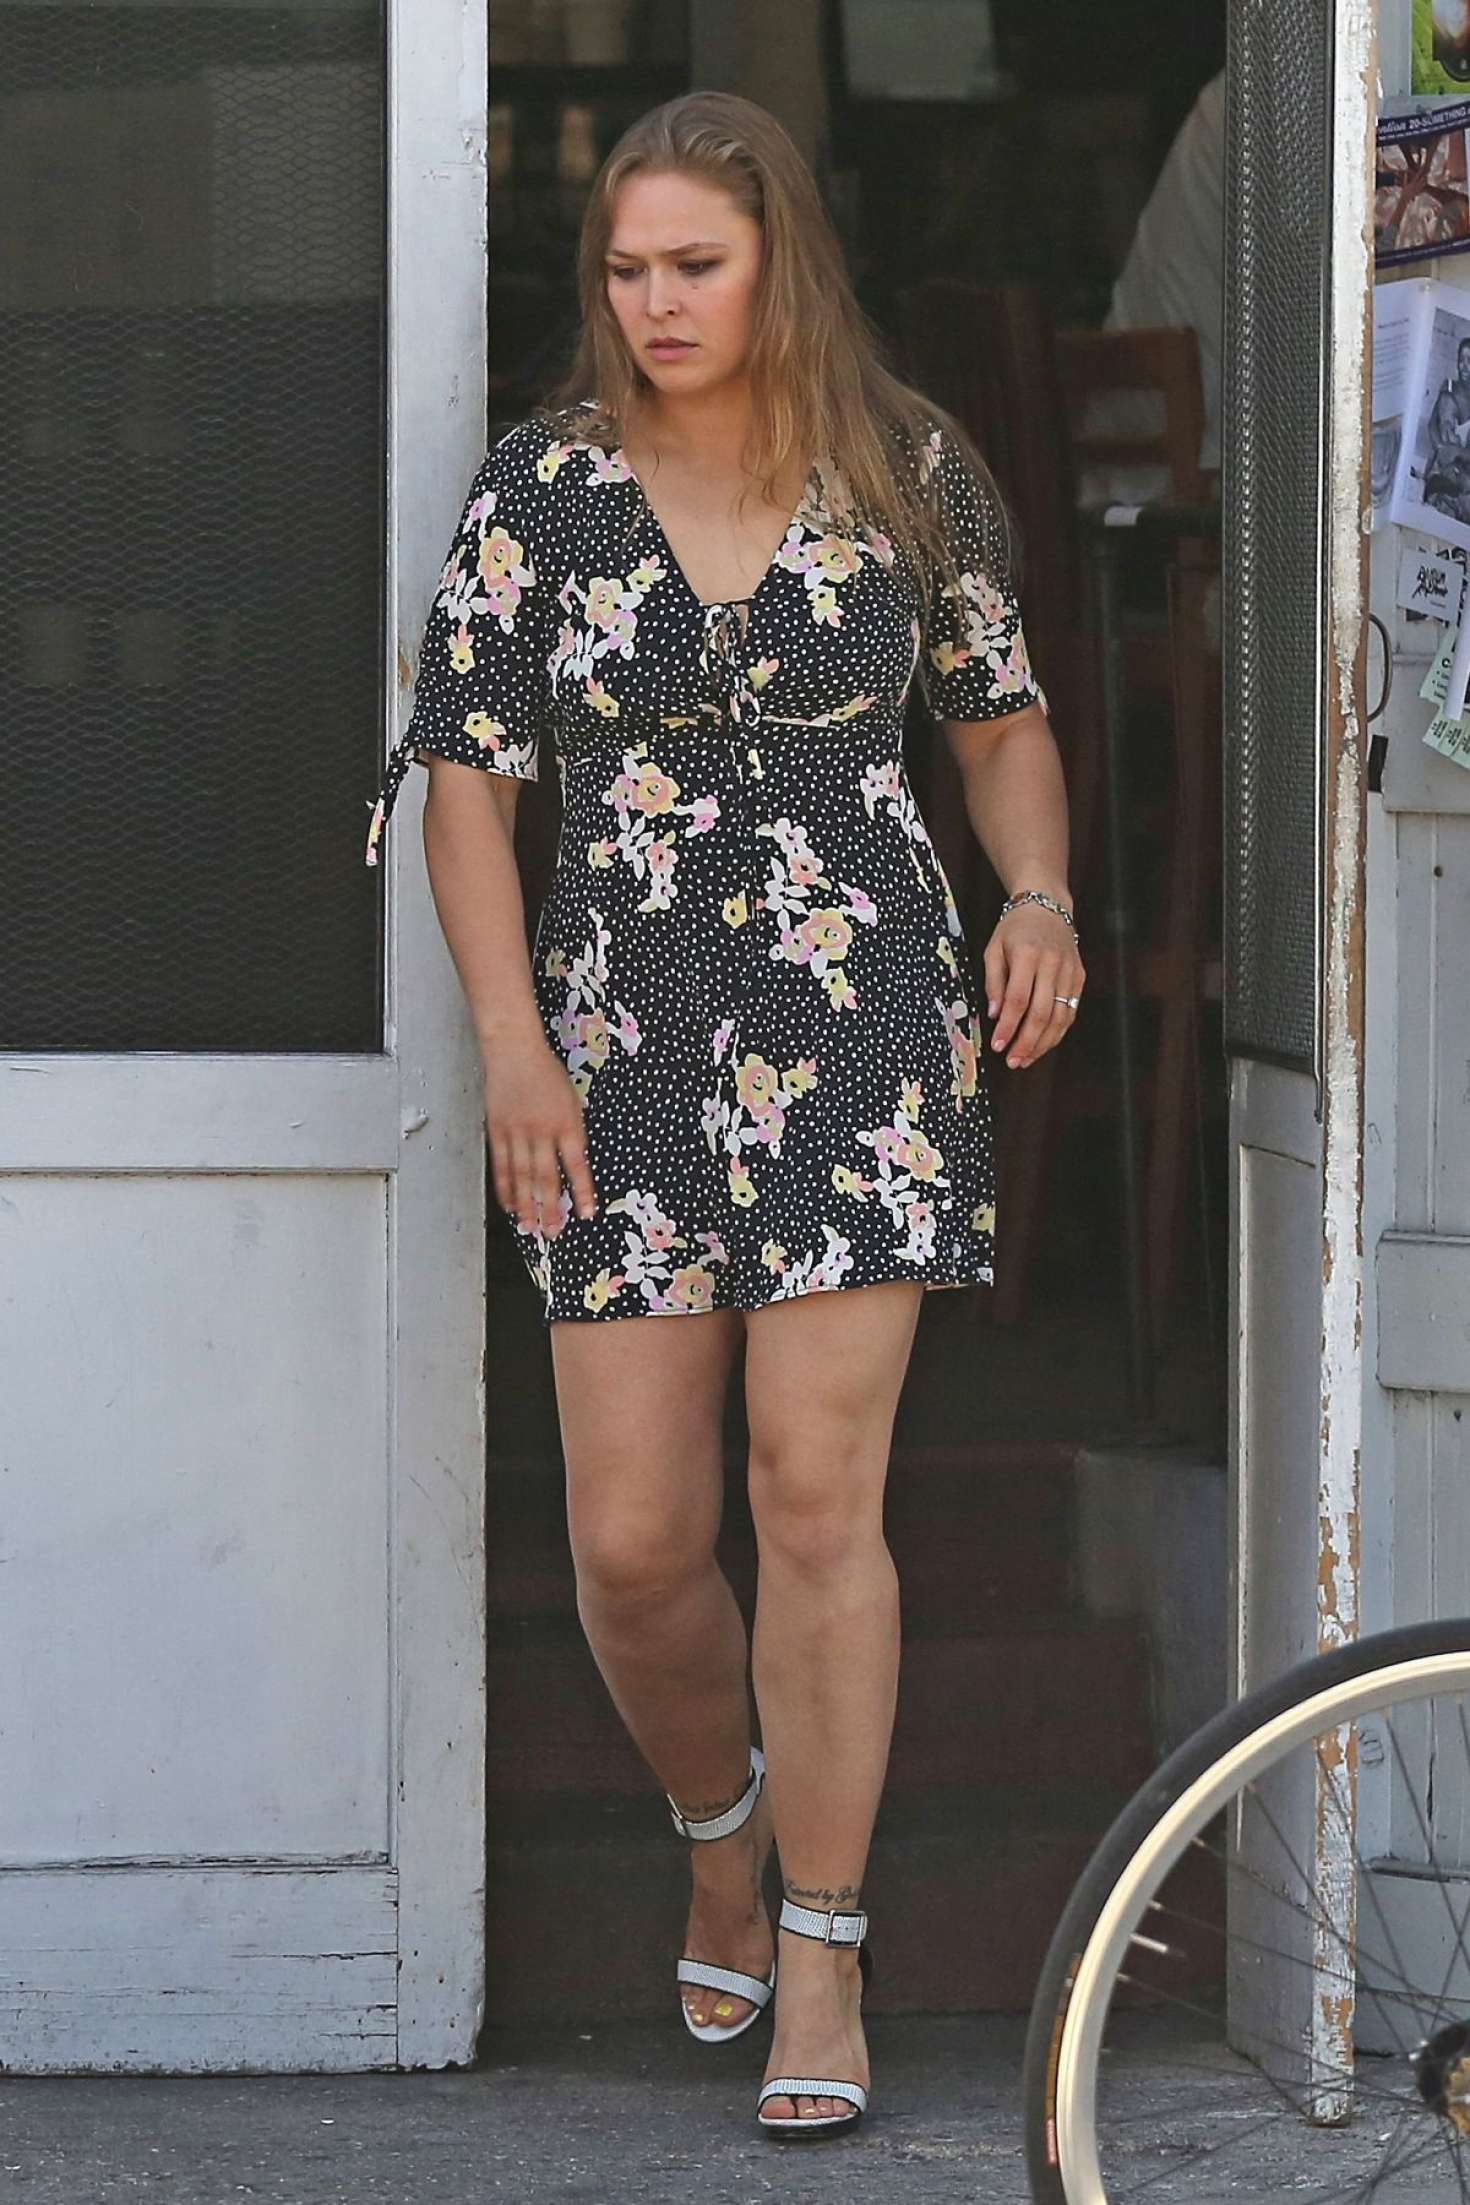 Ronda Rousey In Short Floral Dress 08 Gotceleb